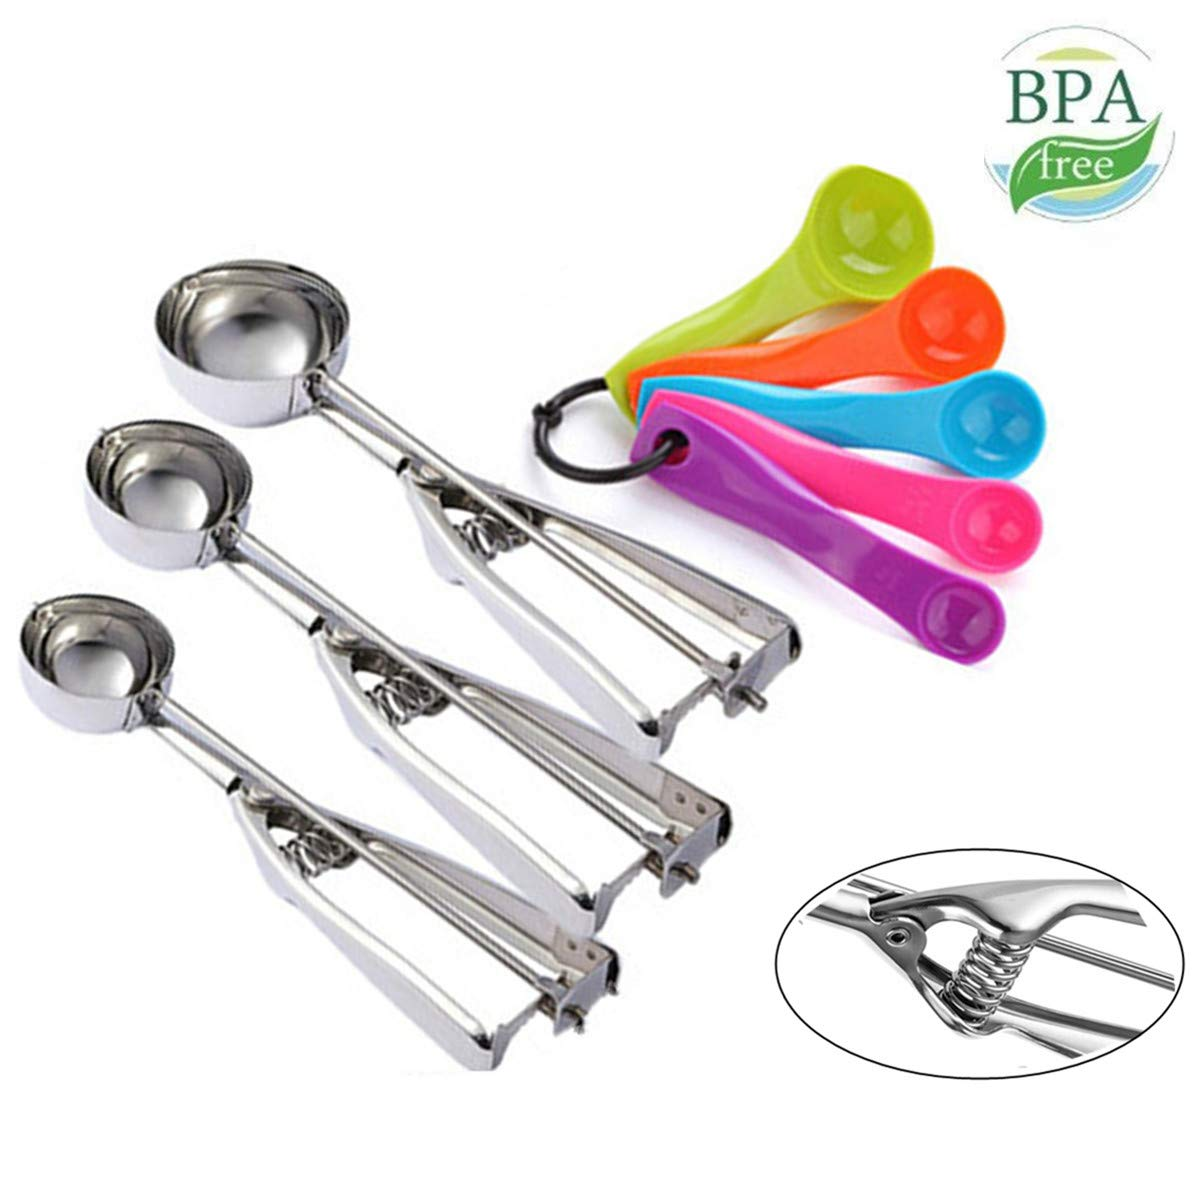 3 piece stainless steel scoop set featured by top US food blog, Practically Homemade